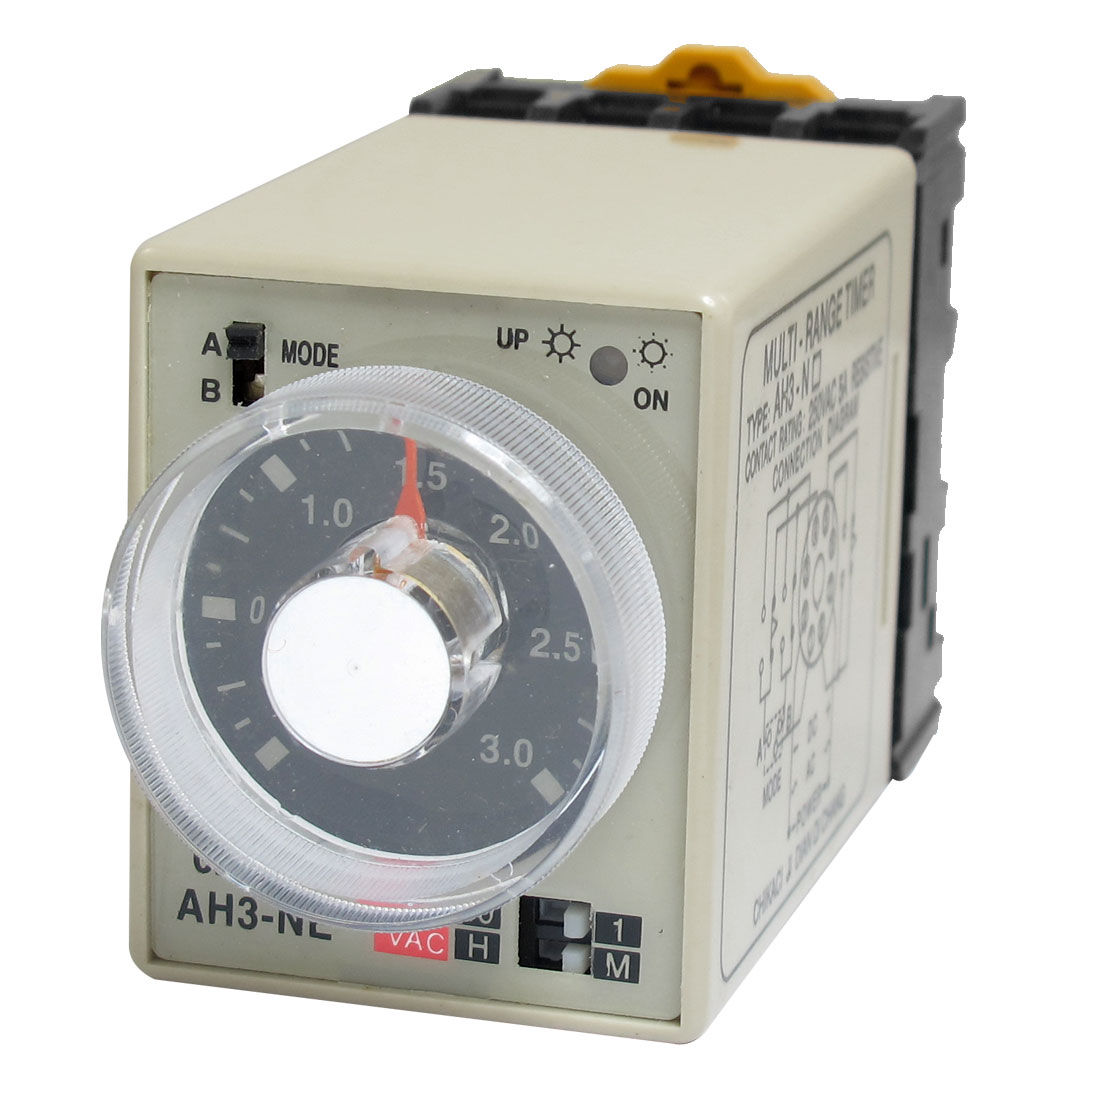 AC 220V AH3-NE 8 Pins 3M-30H 0-3M 0-30H Power on Delay Time Relay w Socket